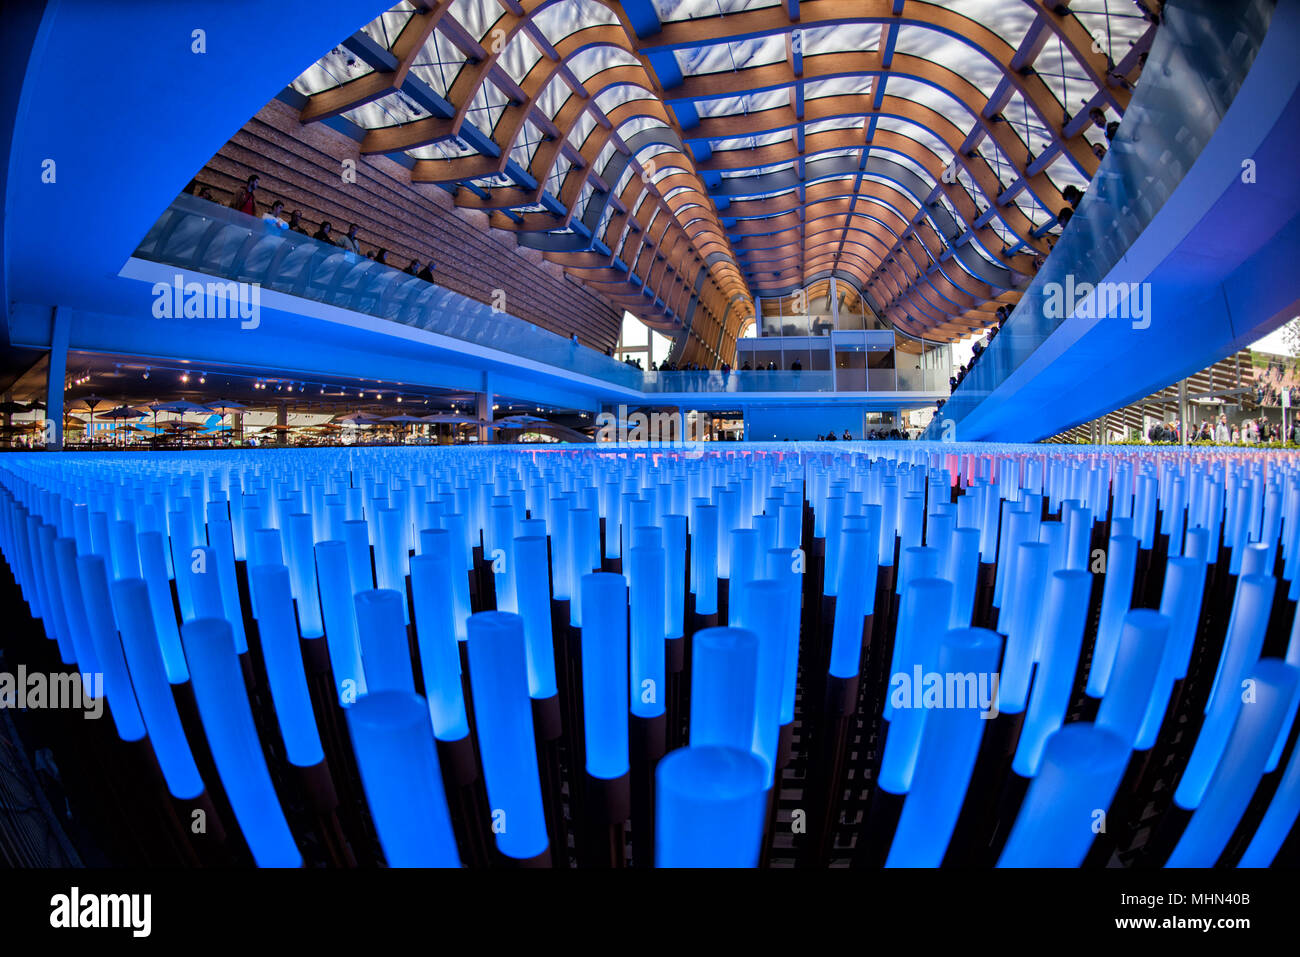 MILAN, ITALY - 17 SEPTEMBER 2015 - Expo is fully crowded for Last days of exhibition - Stock Image